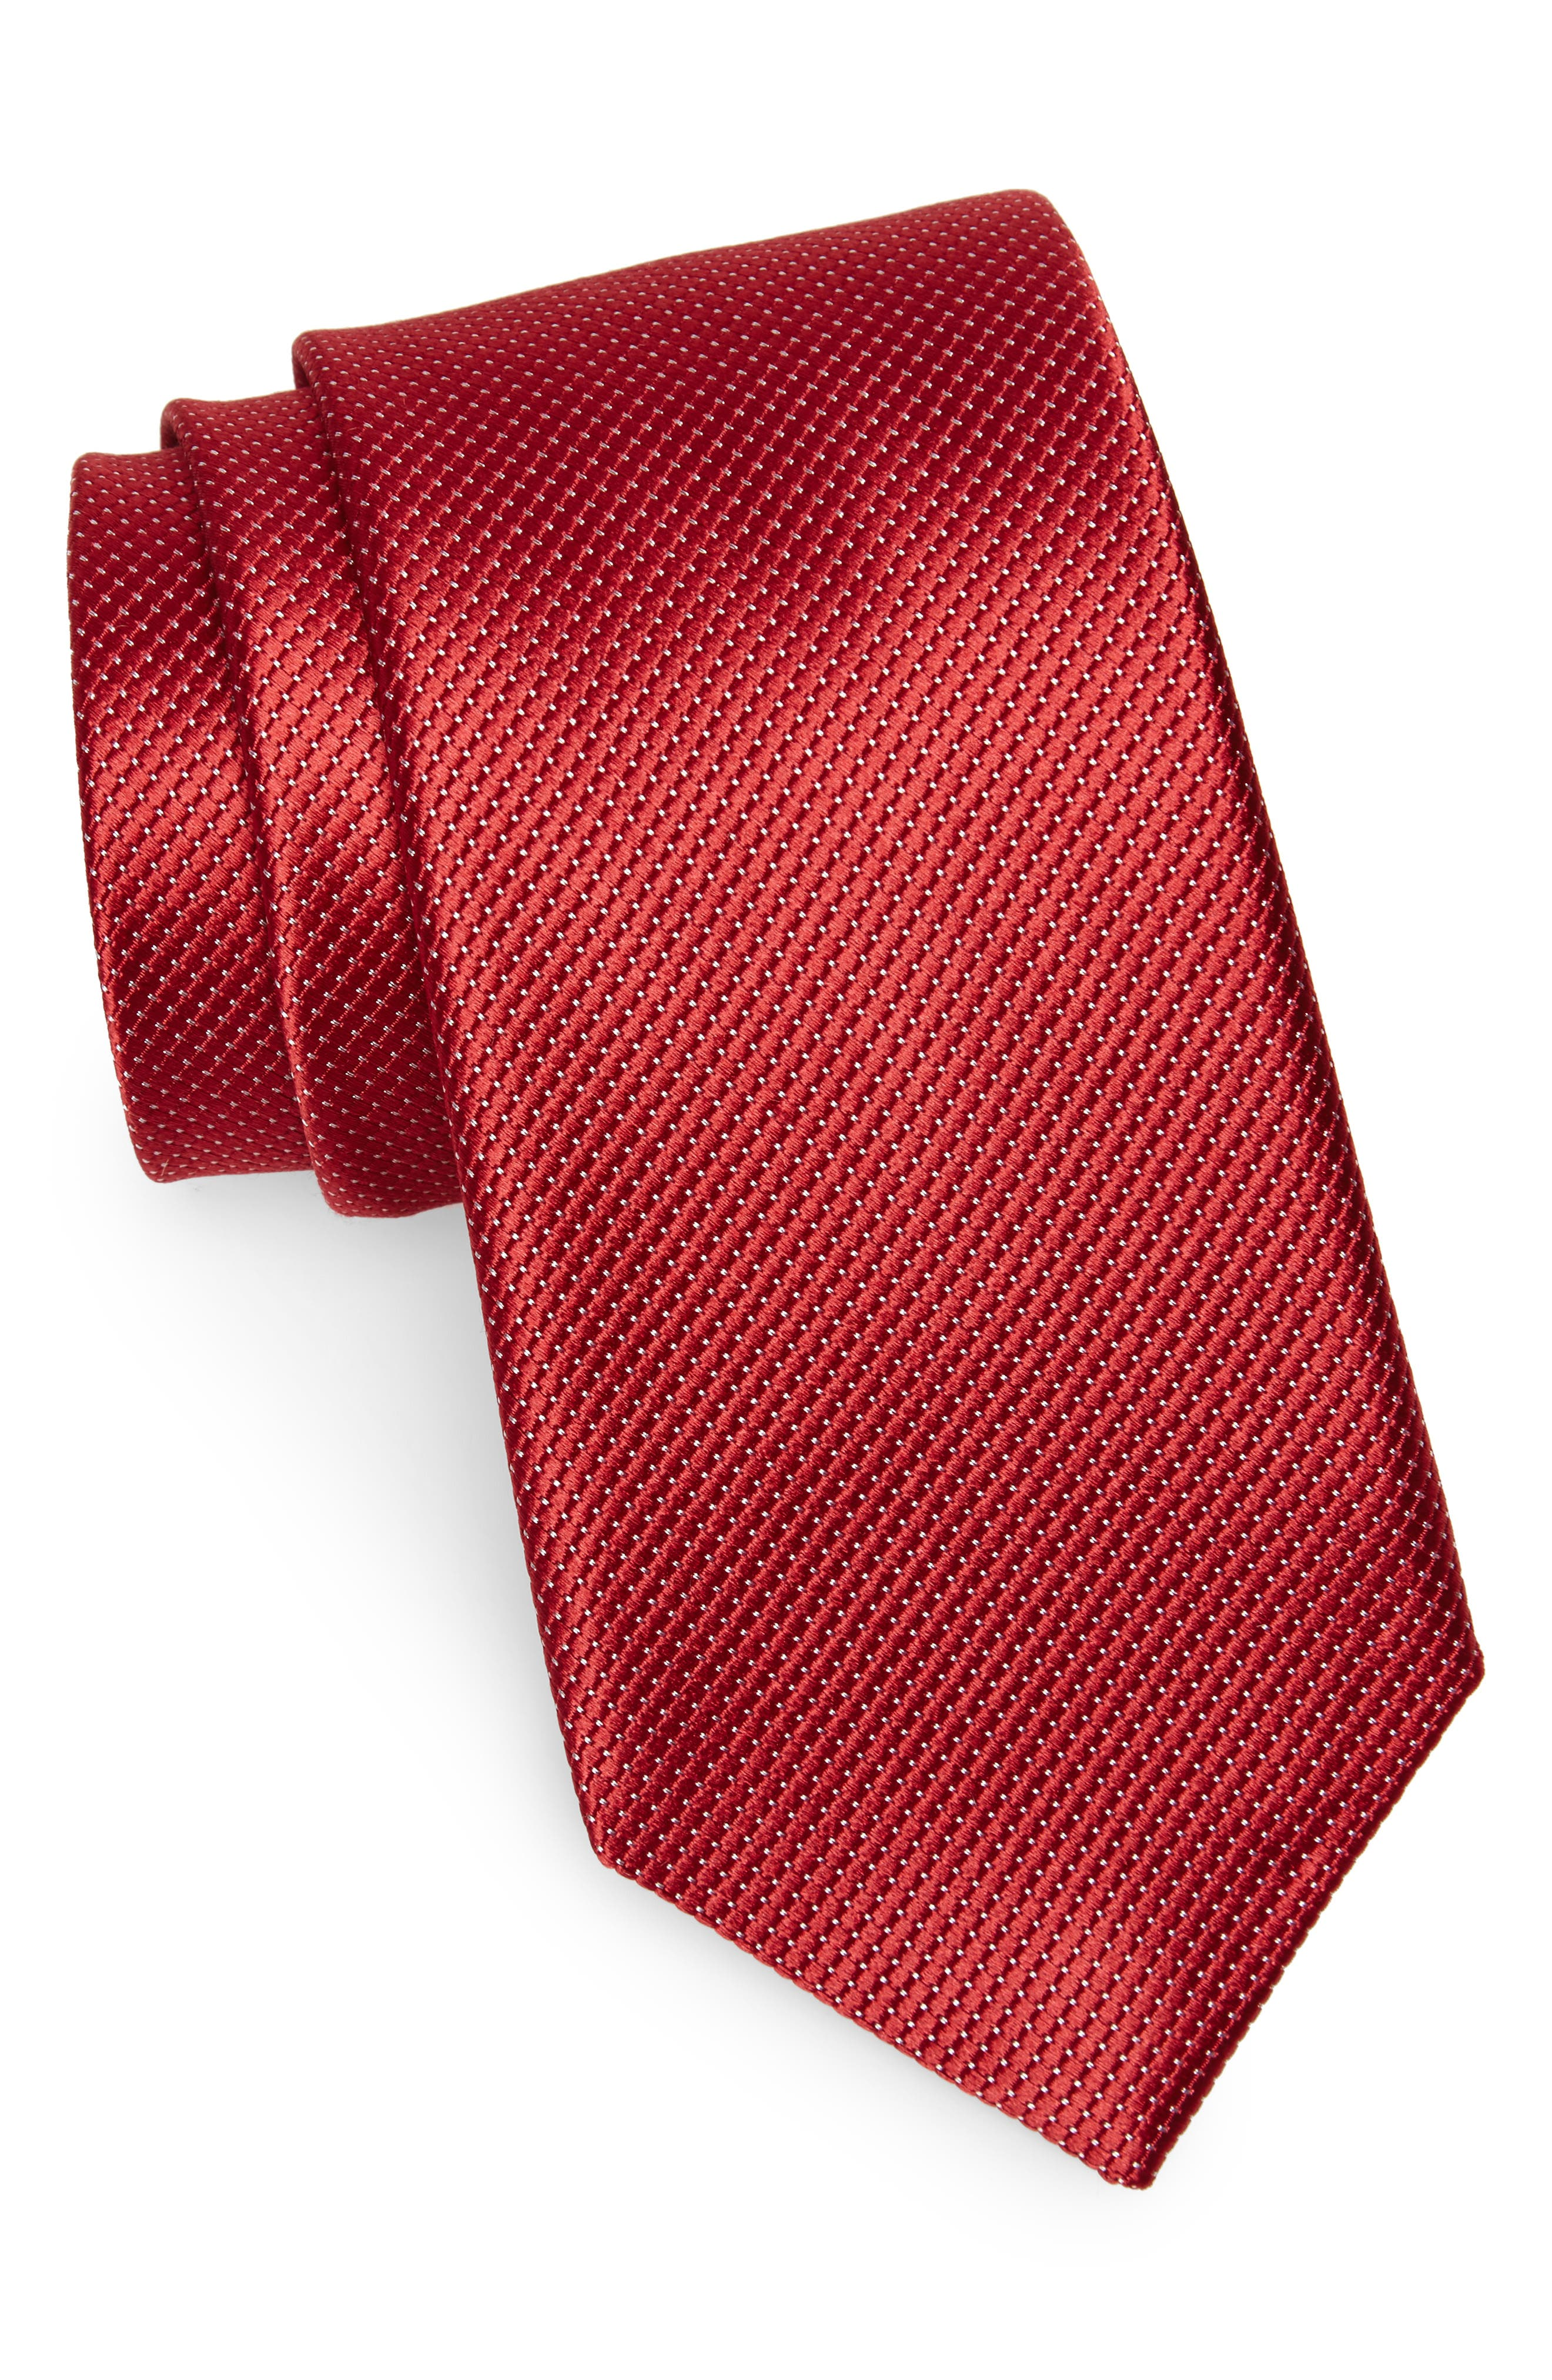 Main Image - Nordstrom Men's Shop Vendôme Dot Silk Tie